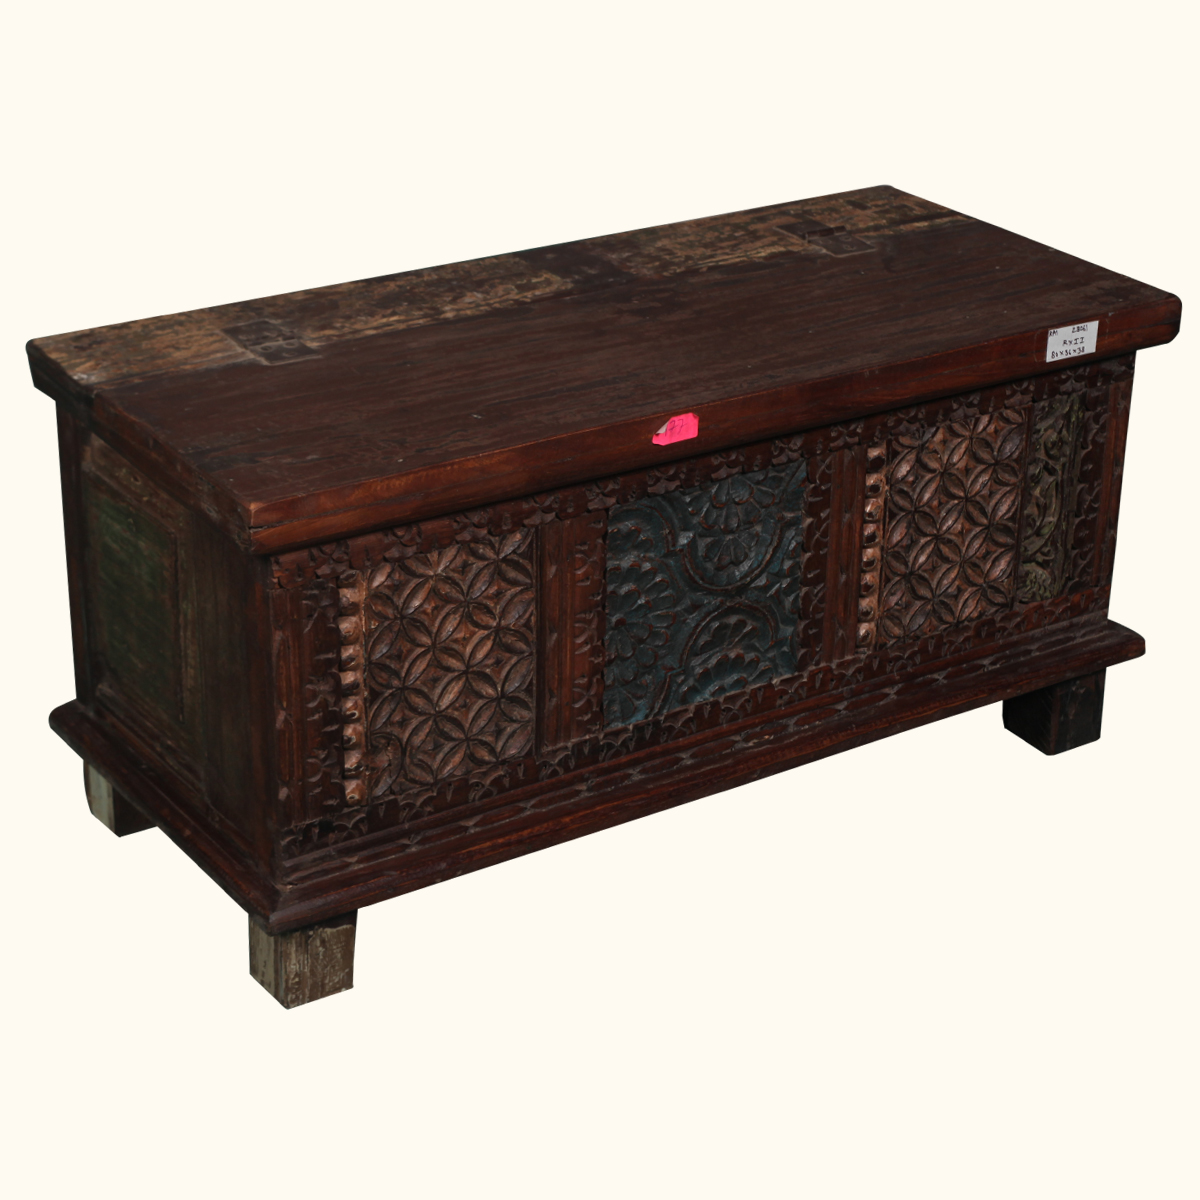 Hand Carved Reclaimed Wood Rustic Storage Chest Coffee Table Hope Box Furniture Ebay